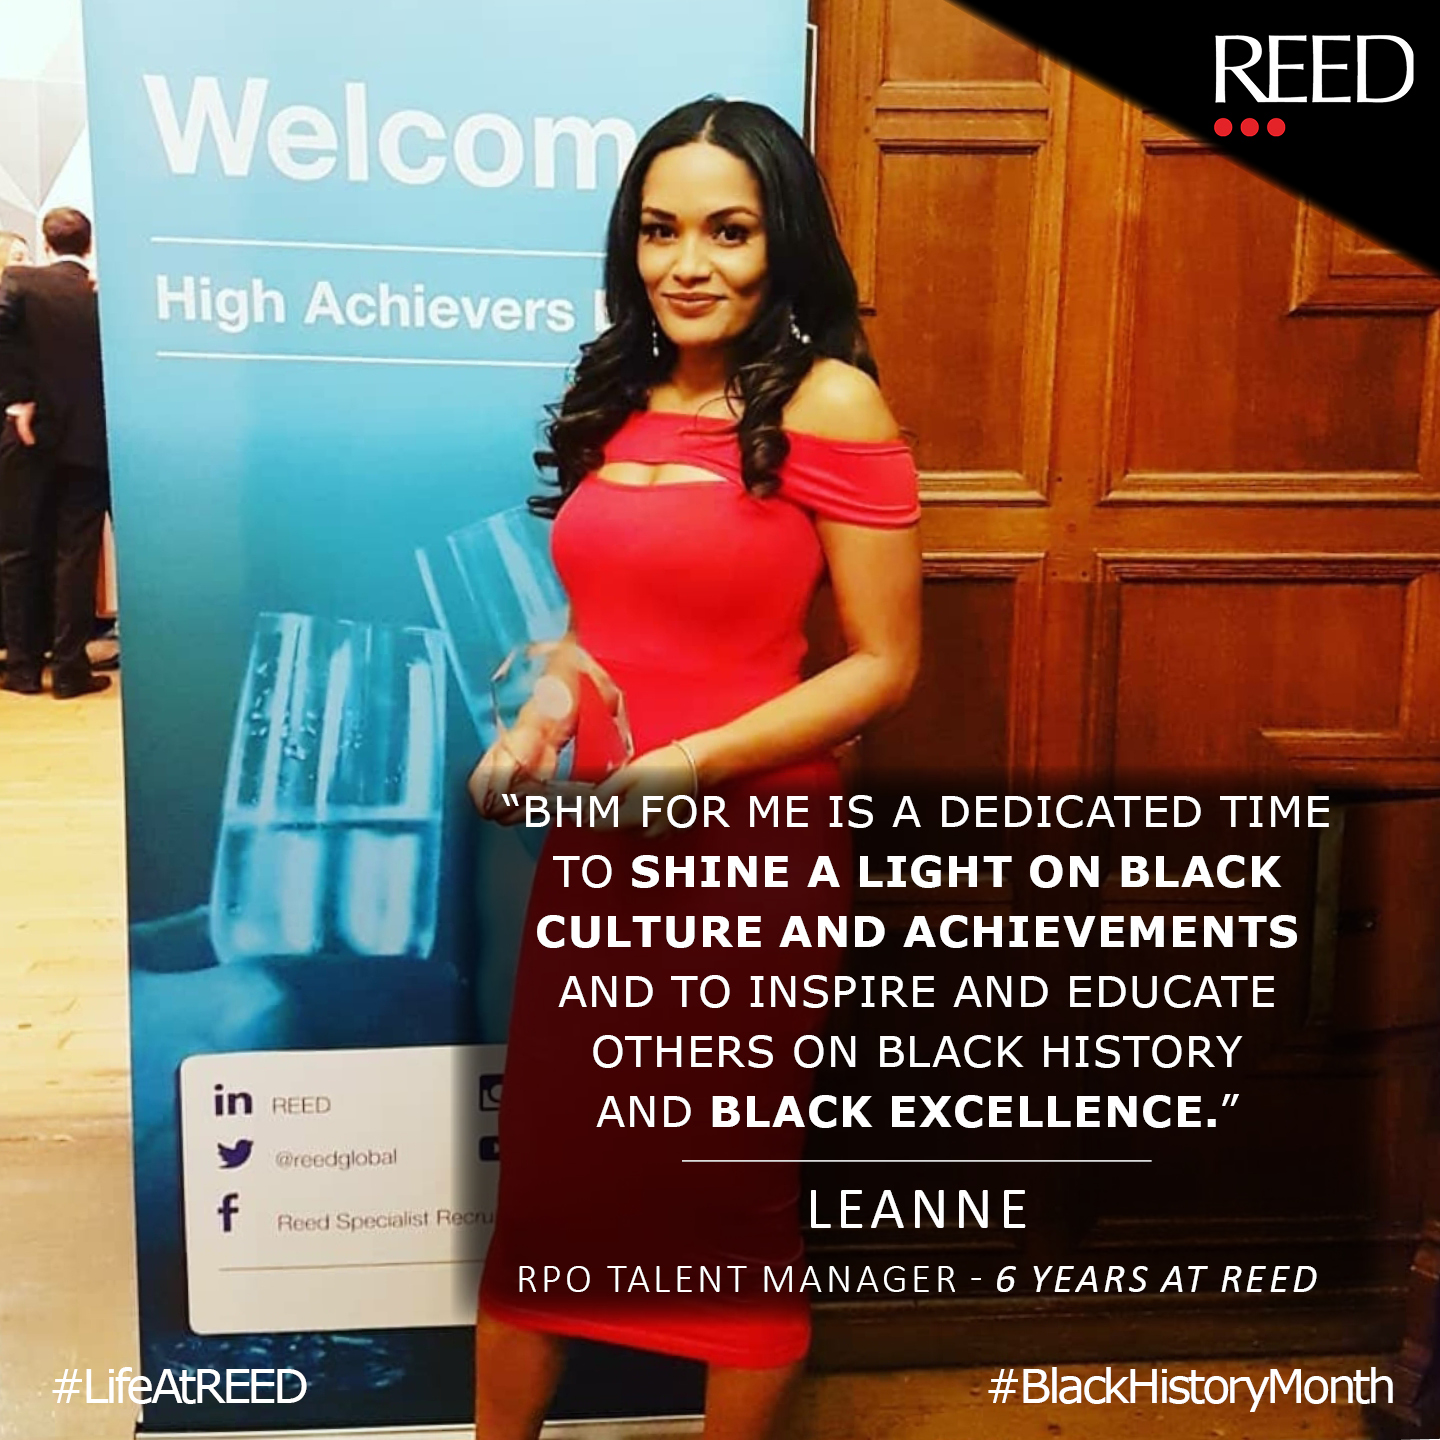 Leanne Barter - Black History Month 2020 quote